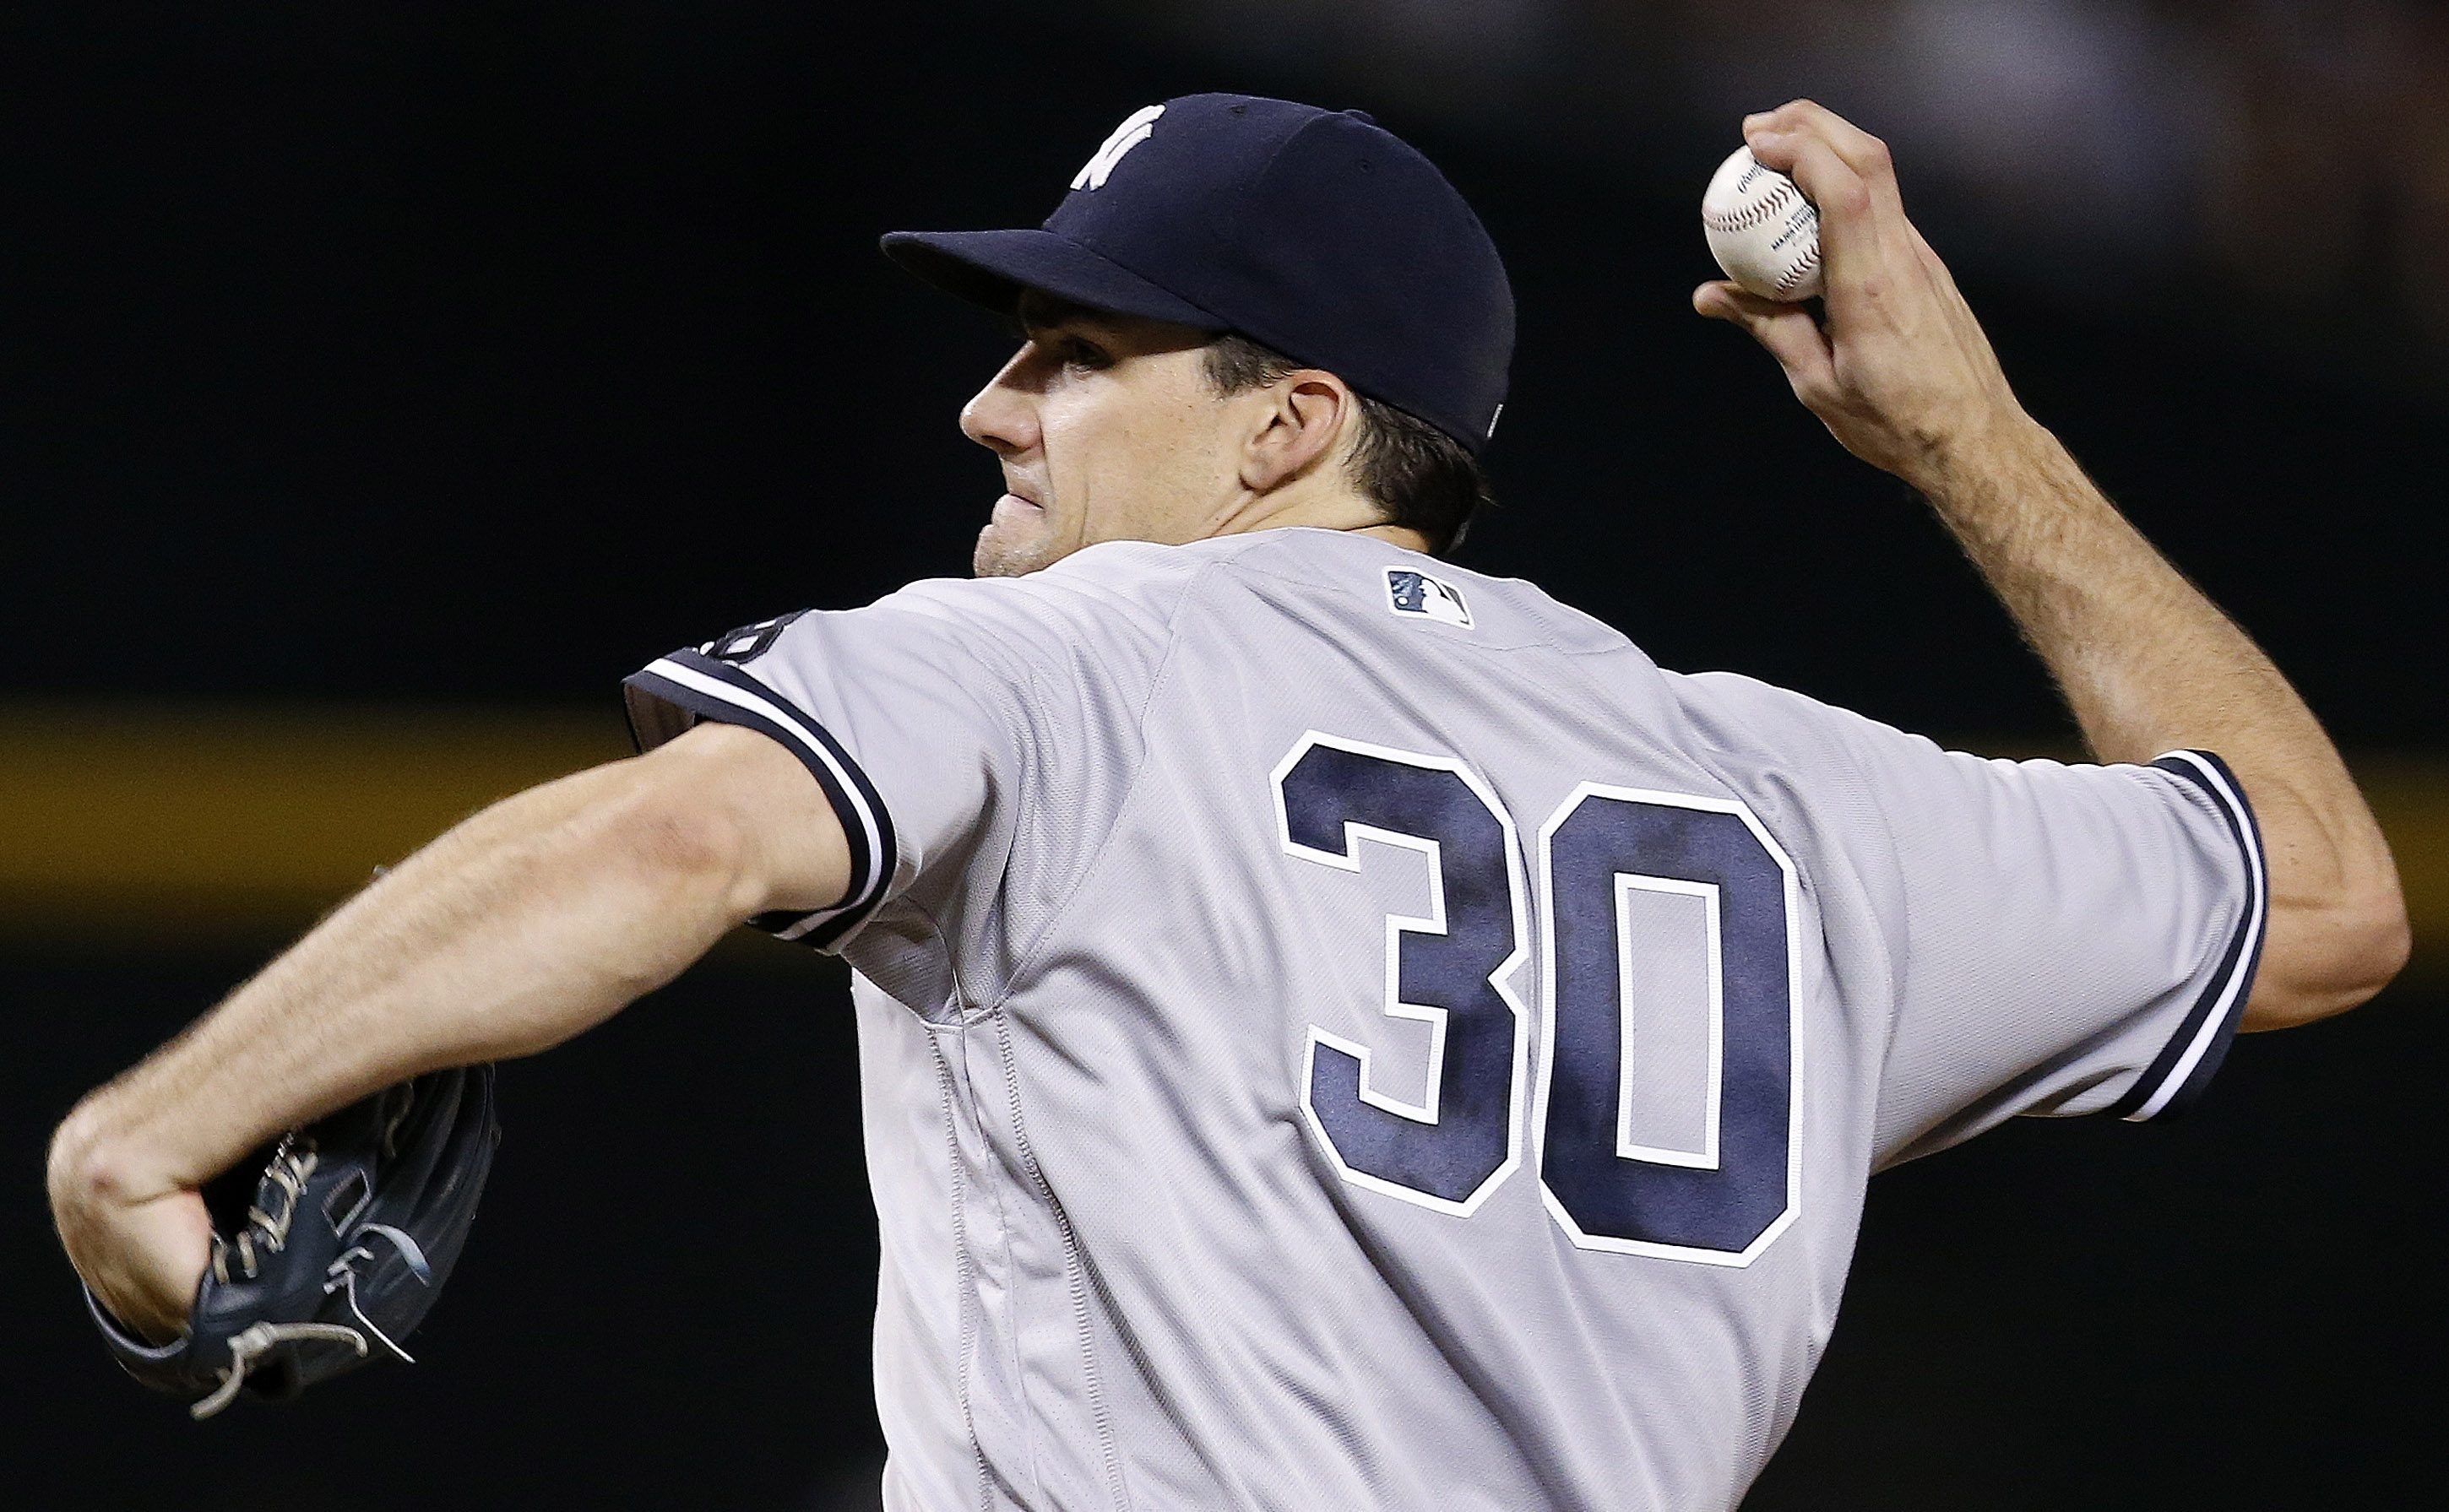 New York Yankees' Nathan Eovaldi throws a pitch against the Arizona Diamondbacks during the fourth inning of a baseball game Wednesday, May 18, 2016, in Phoenix. (AP Photo/Ross D. Franklin)